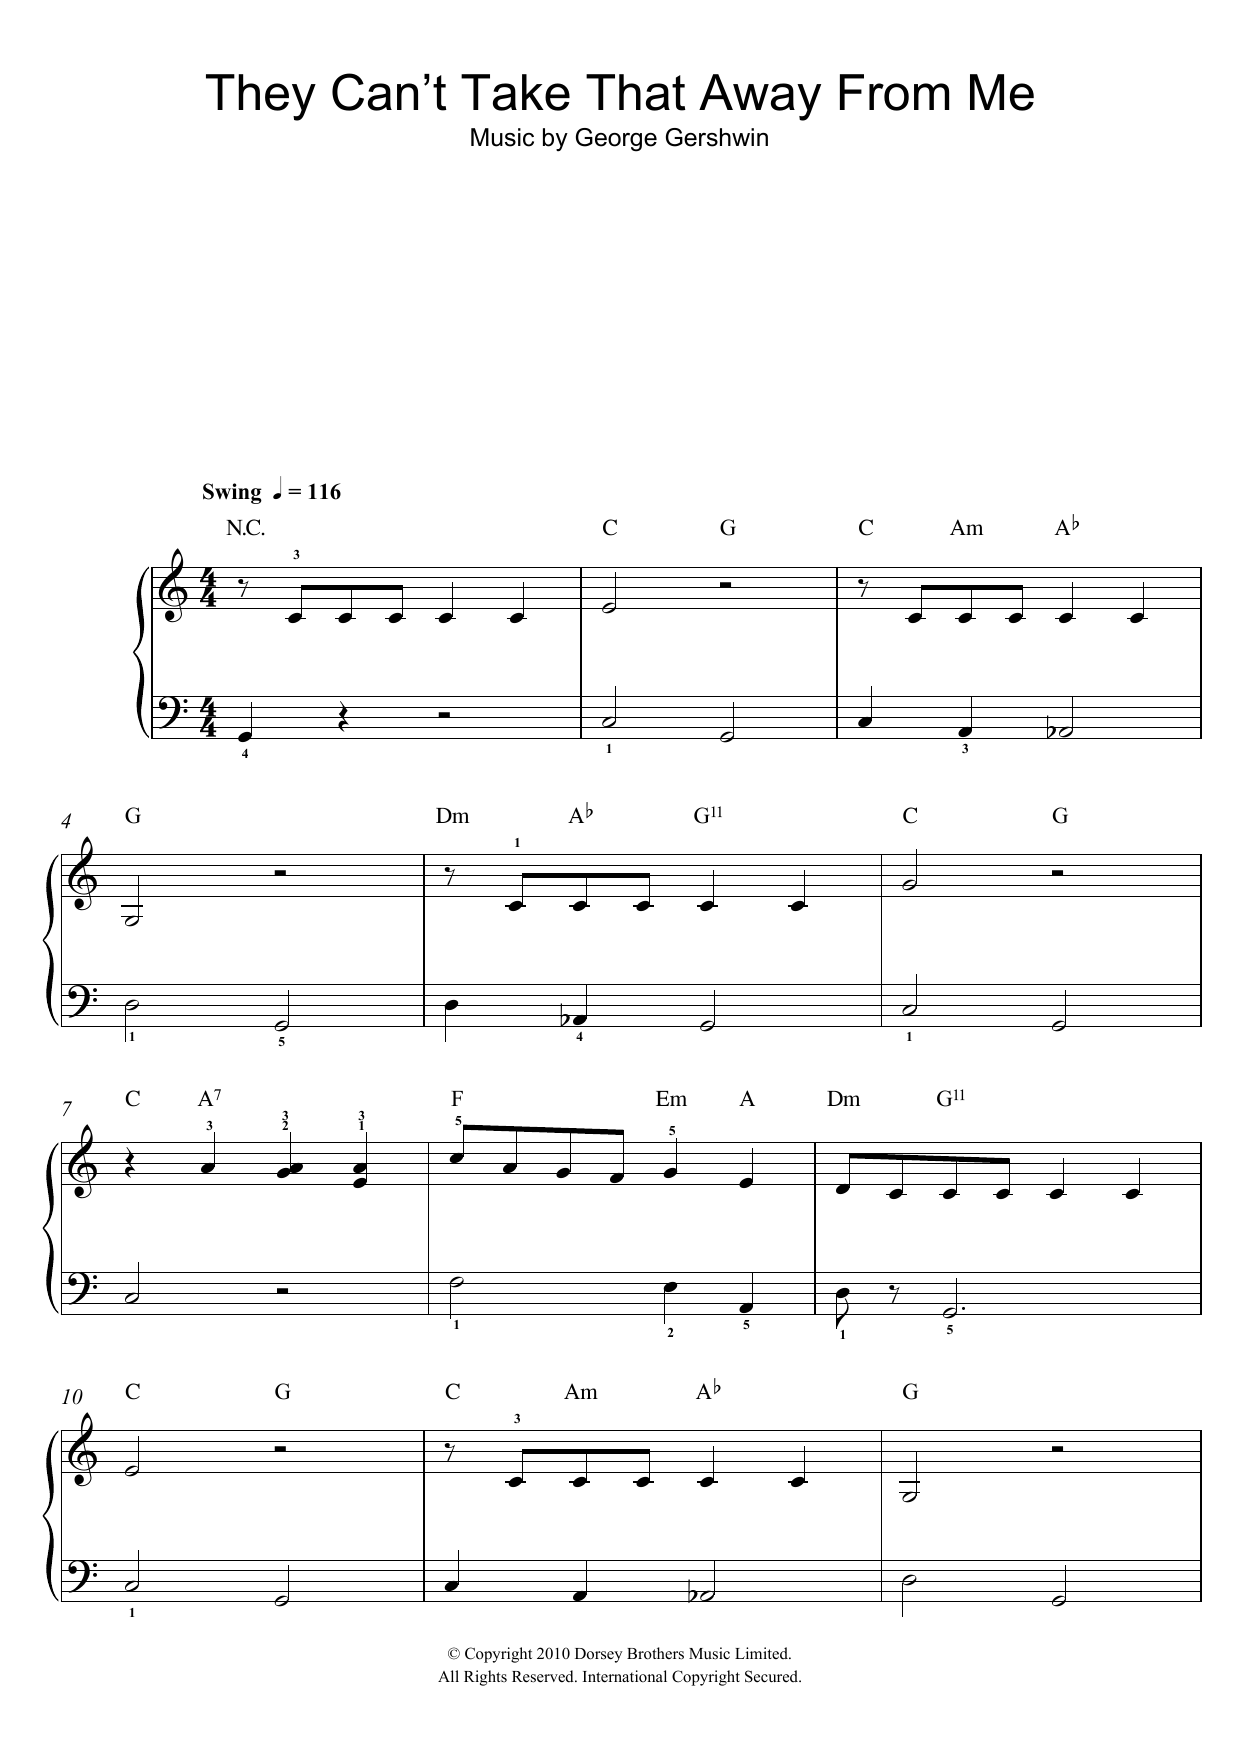 They Can't Take That Away From Me sheet music for piano solo (chords) by George Gershwin